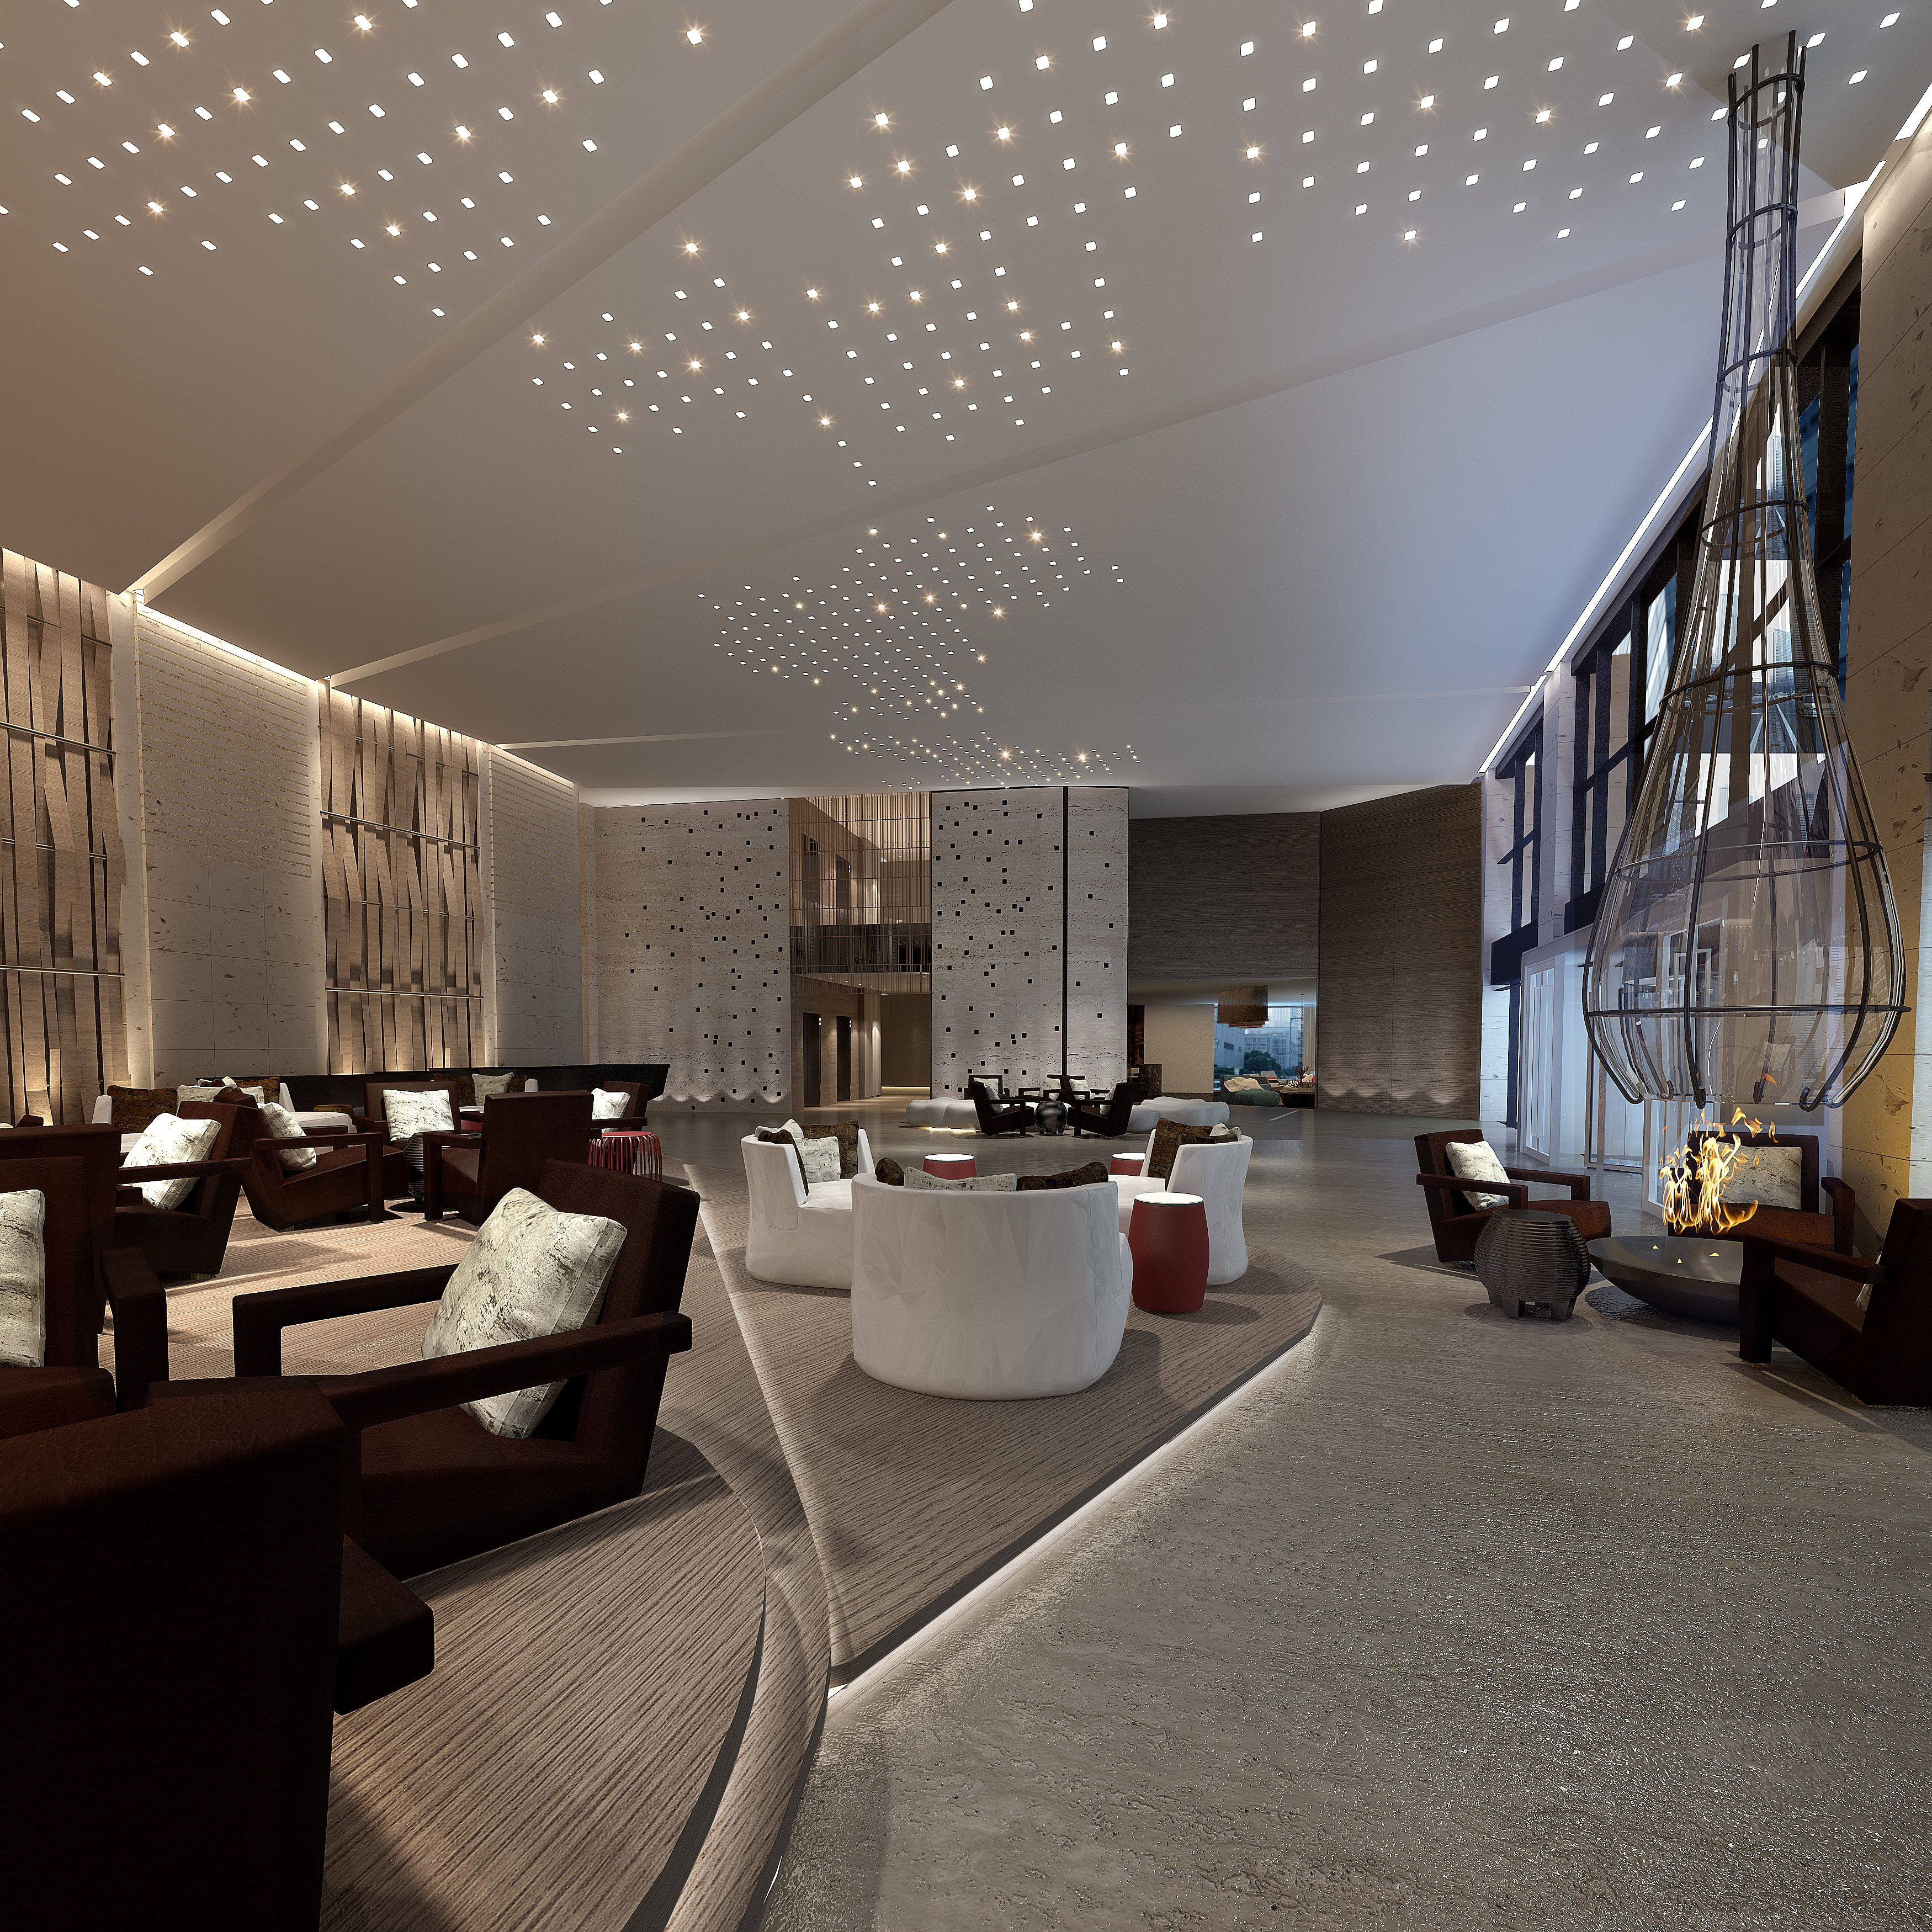 Lobby Interior Design Ideas: Pin By Akam Majeed On Ceiling Design